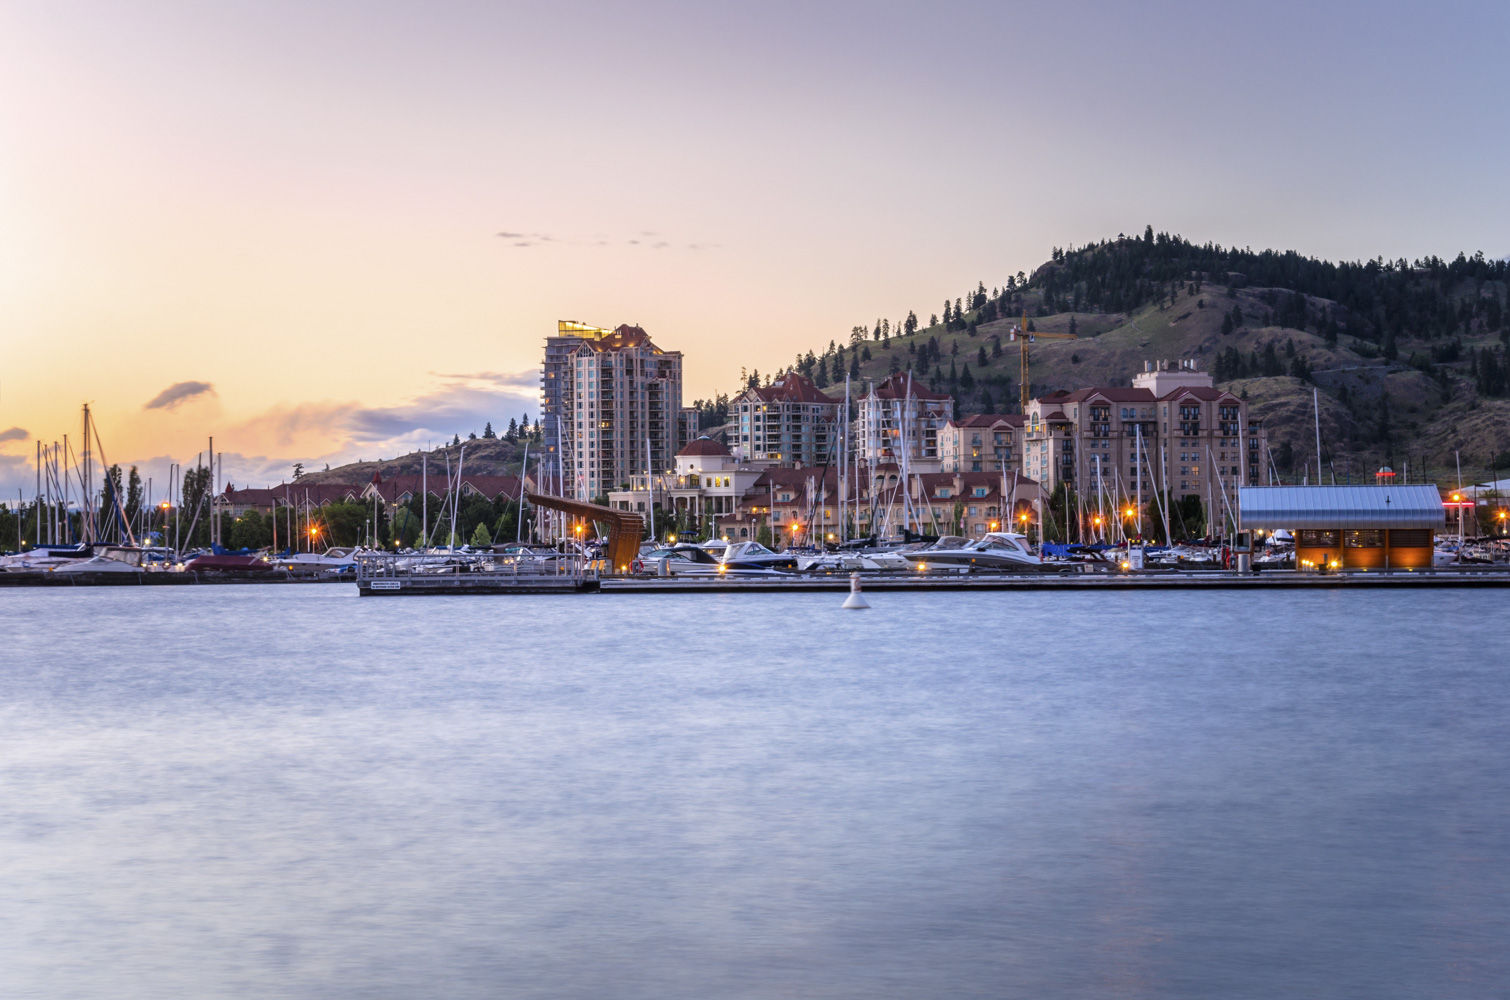 Enjoy a summer's evening from your Kelowna hotel by catching a concert or music festival downtown.